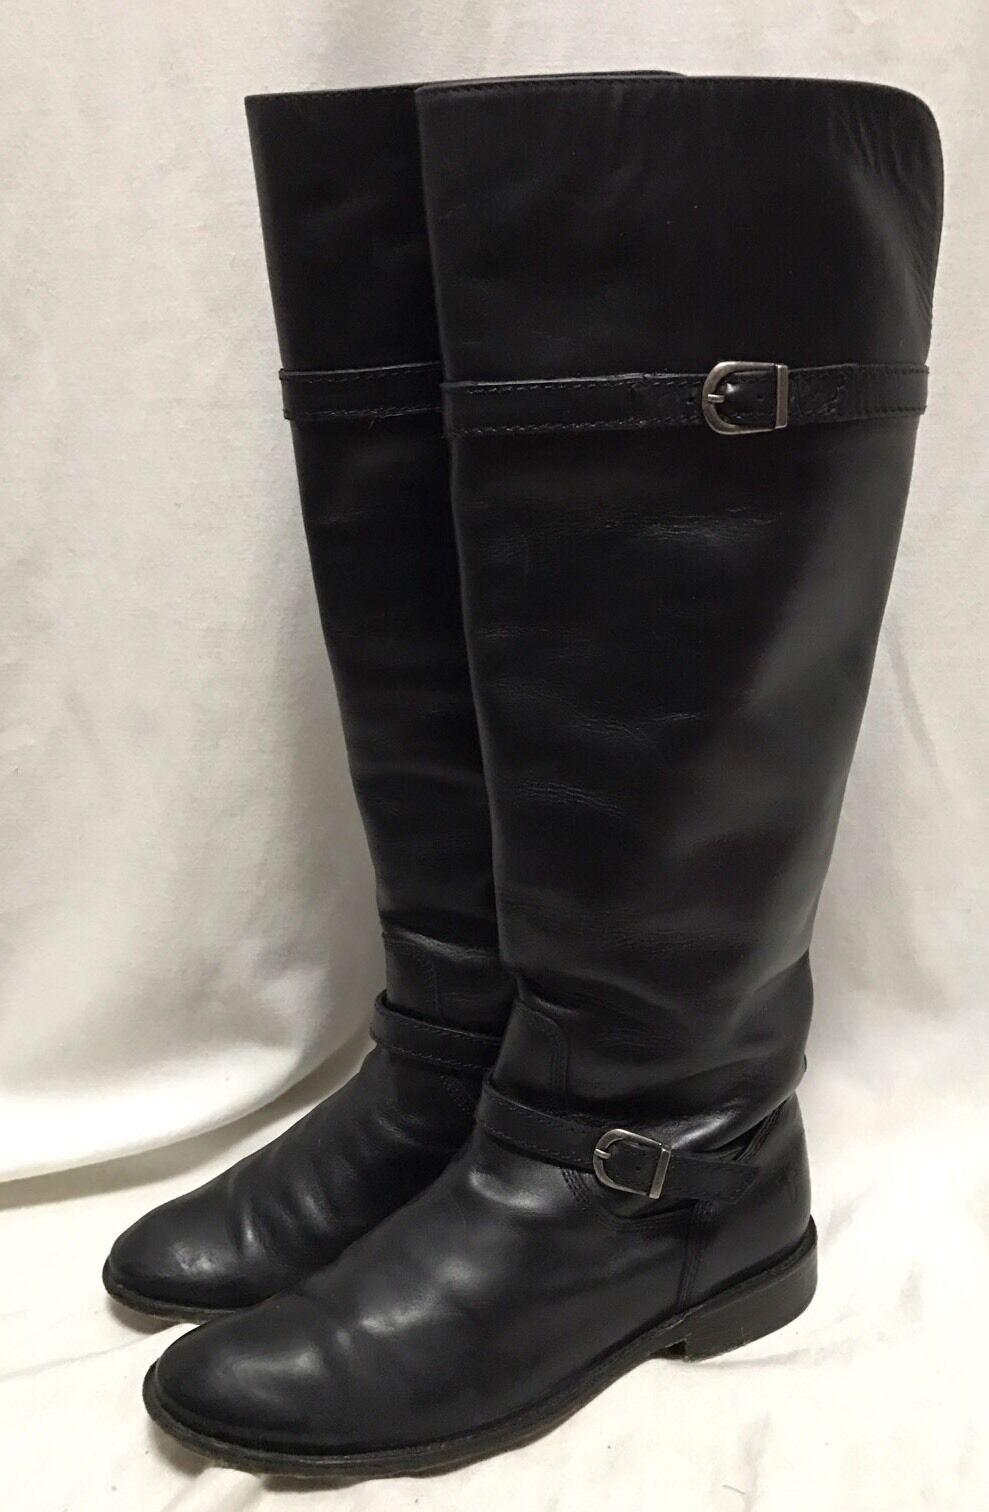 Frye Knee High Riding stivali Wouomo 5.5 nero Leather Equestrian Shirley Pull On